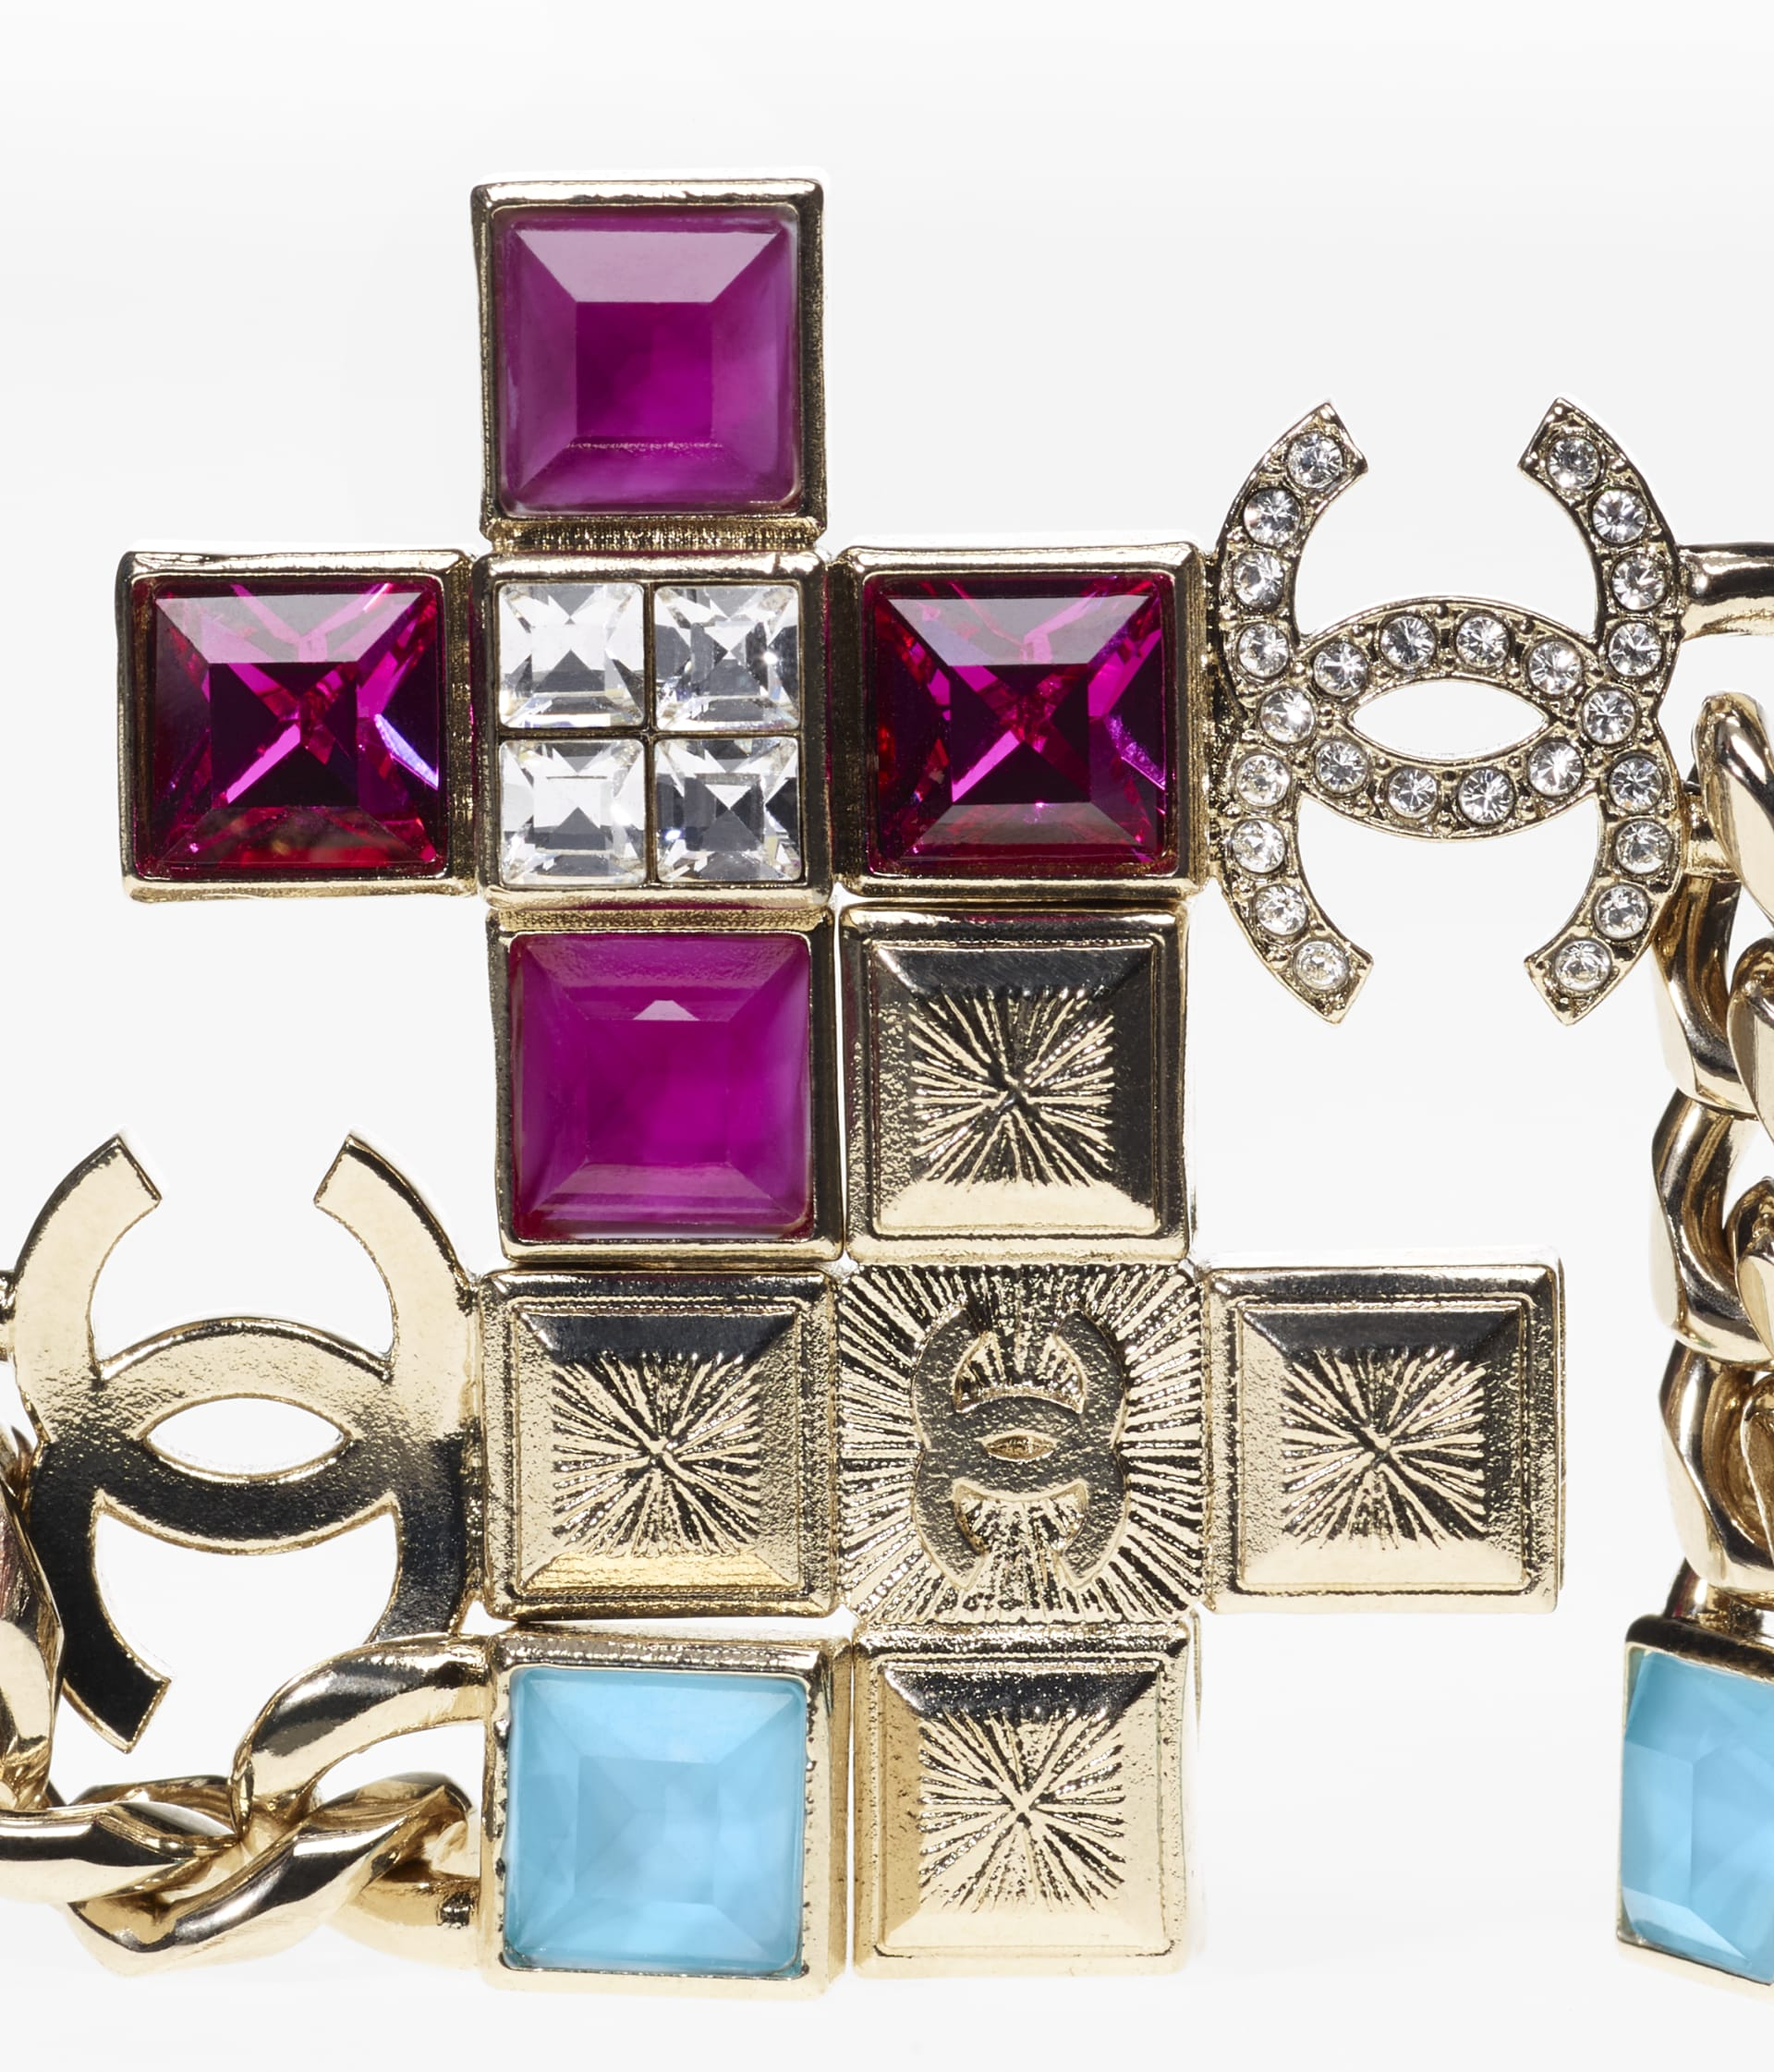 image 2 - Earrings - Metal & Strass - Gold, Fuchsia, Blue & Crystal